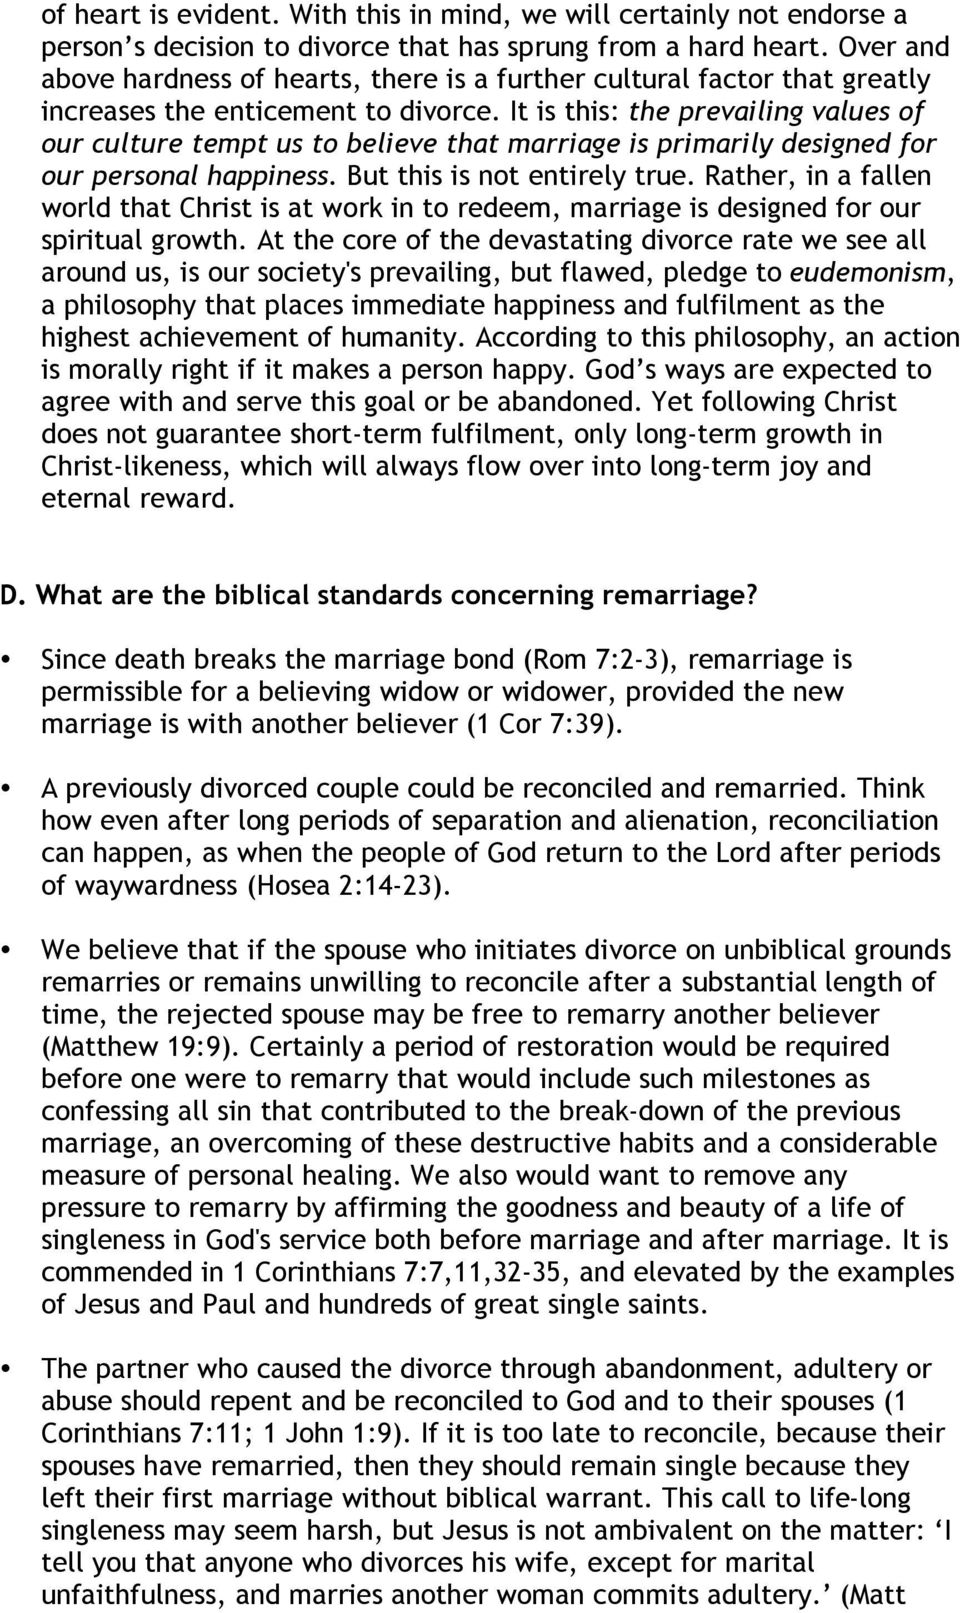 WHAT WE BELIEVE ABOUT DIVORCE AND REMARRIAGE AT COMMON GROUND CHURCH